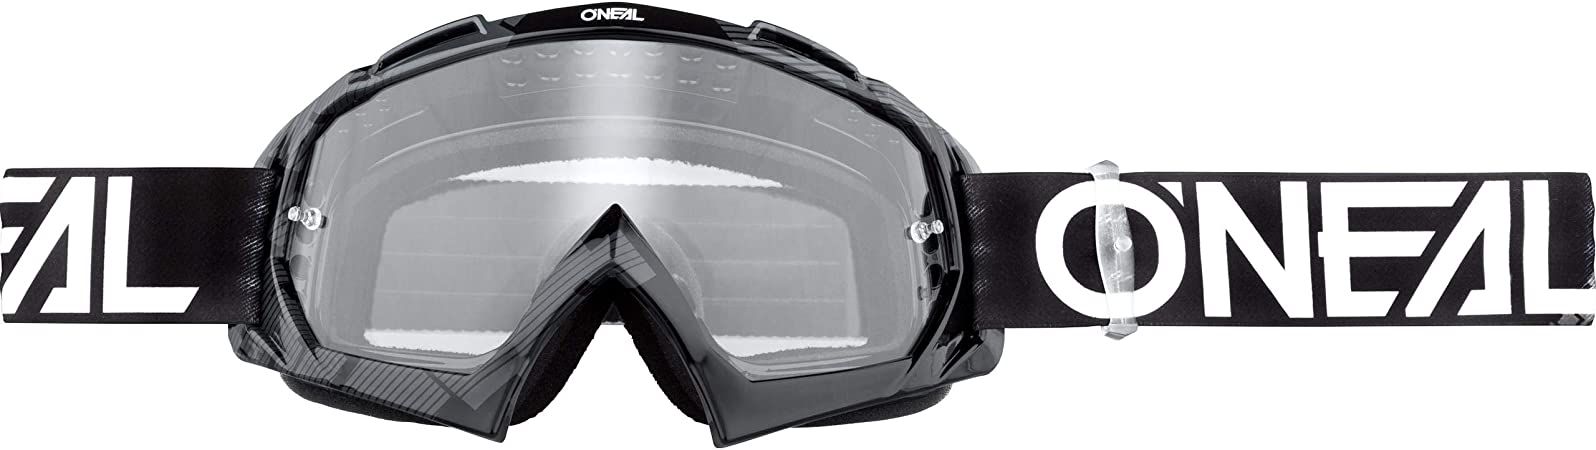 Oneal B-10 Stream Clear Motocross Goggles